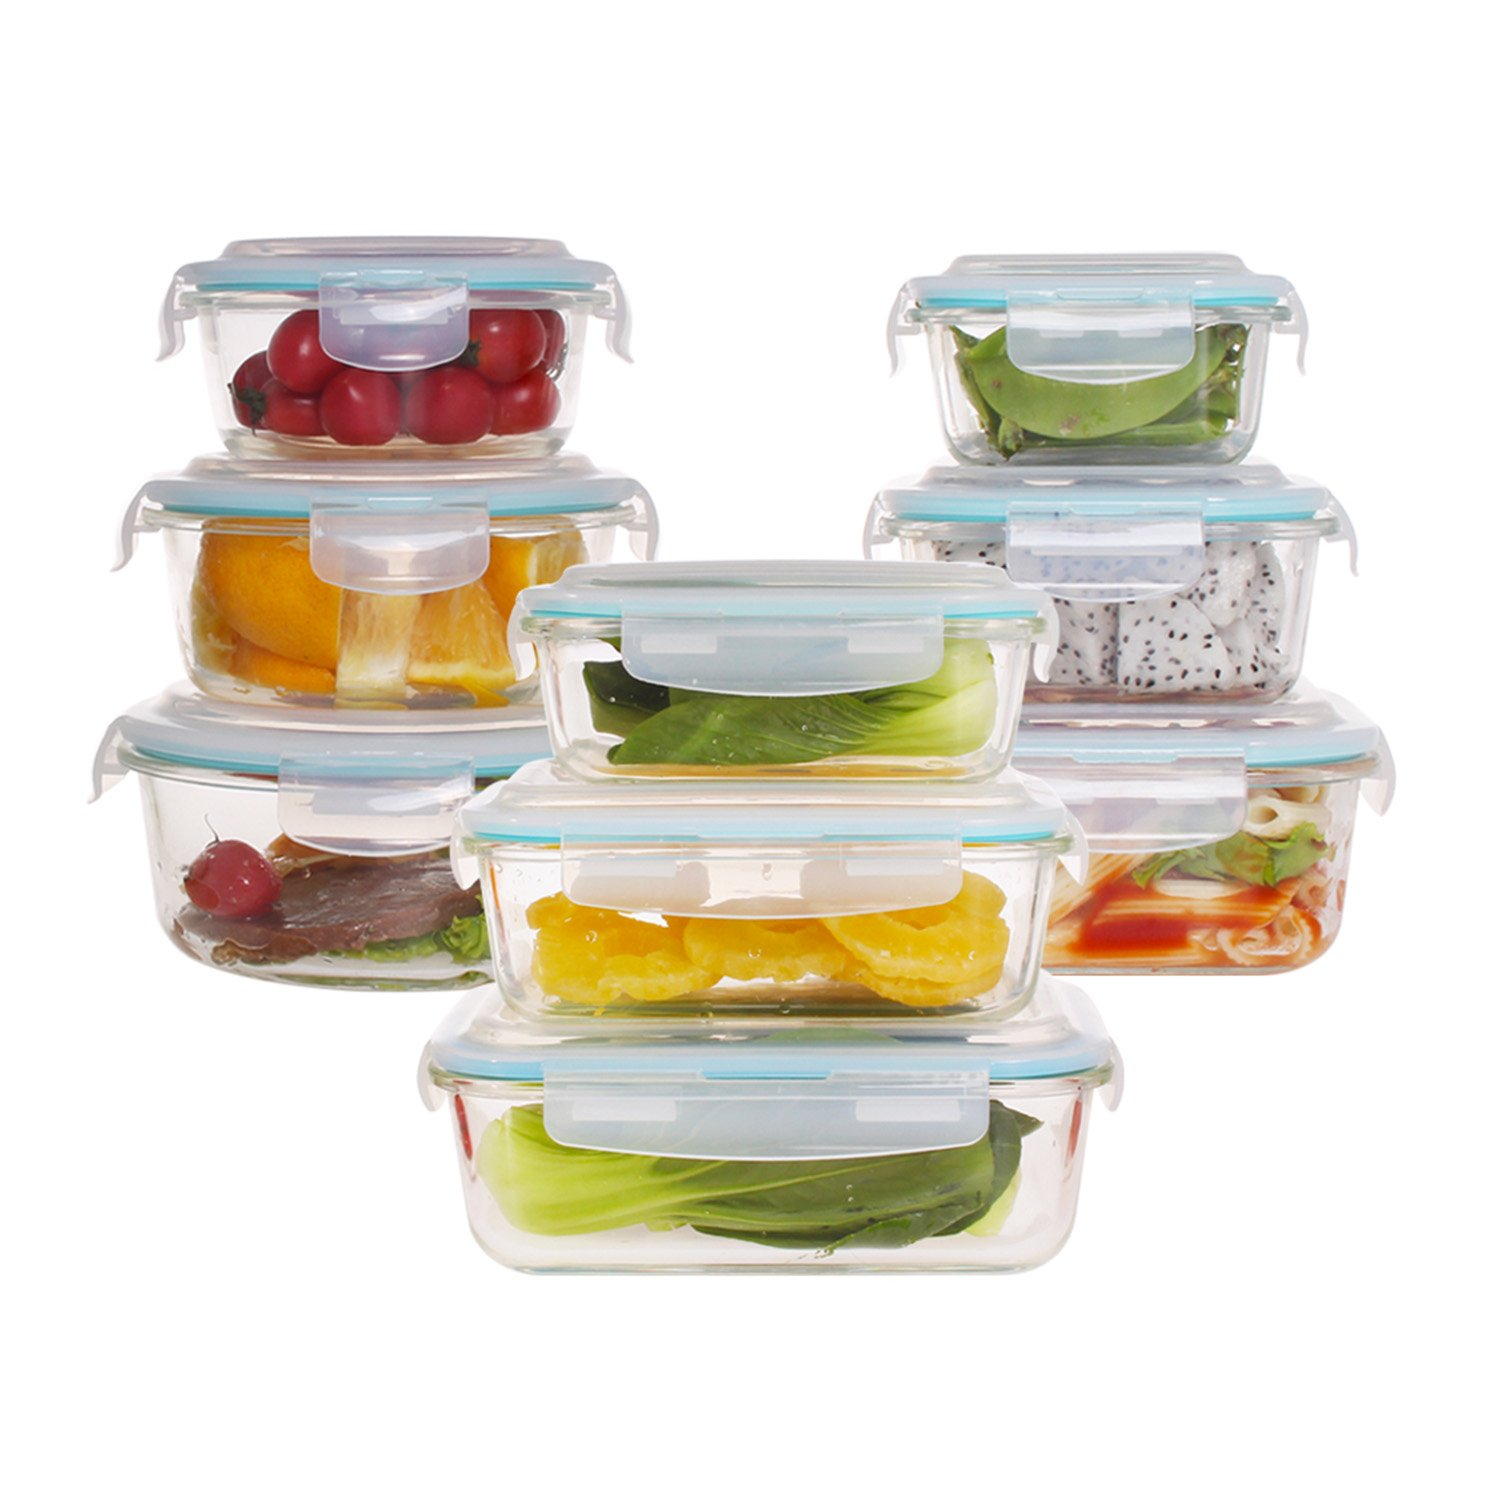 Attirant 18 Piece Glass Food Storage Container Set With Airtight Locking Lids Glass,  Meal Prep Containers BPA Free, Airtight, Microwave, Oven, Freezer, ...